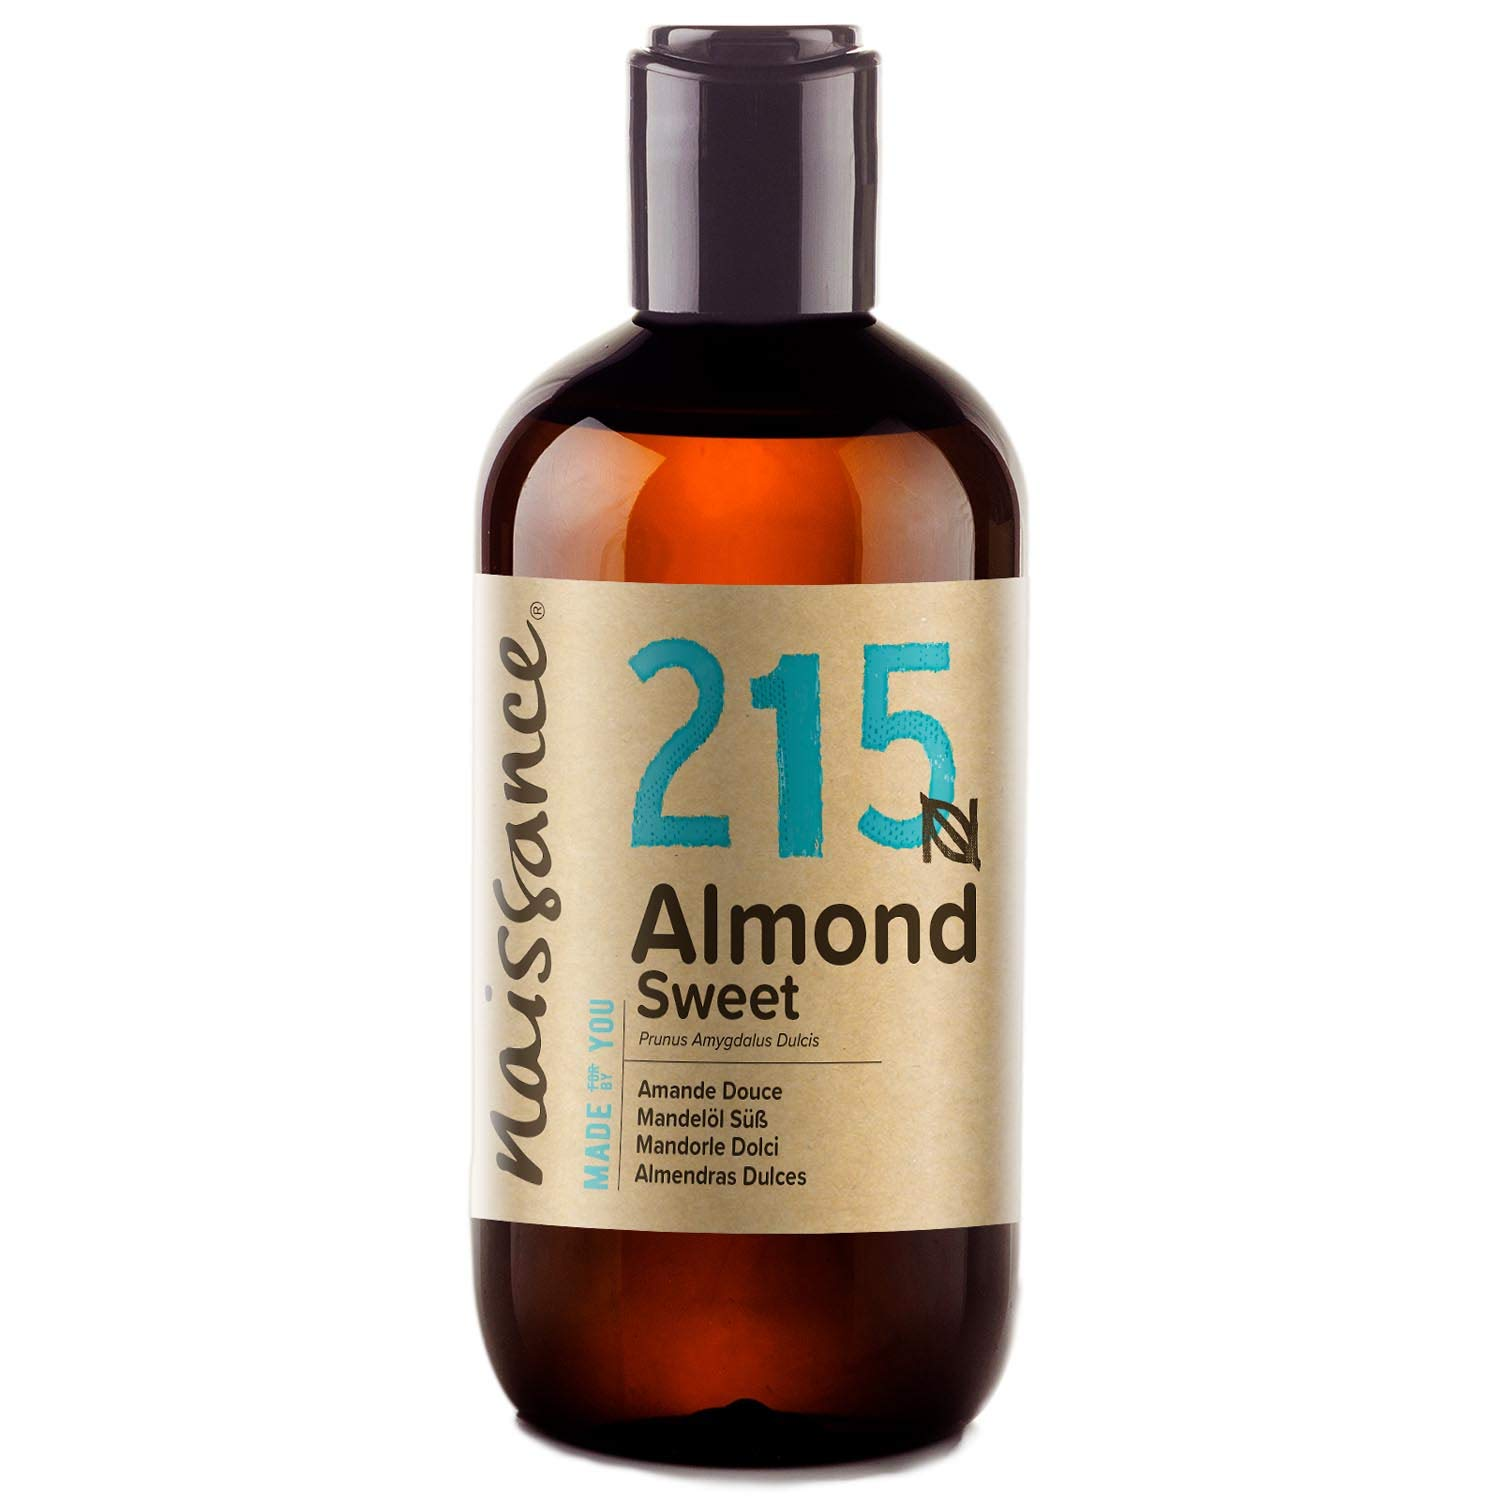 Naissance Sweet Almond Oil (no. 215) 250ml – Pure, Natural, Cruelty Free, Vegan, No GMO